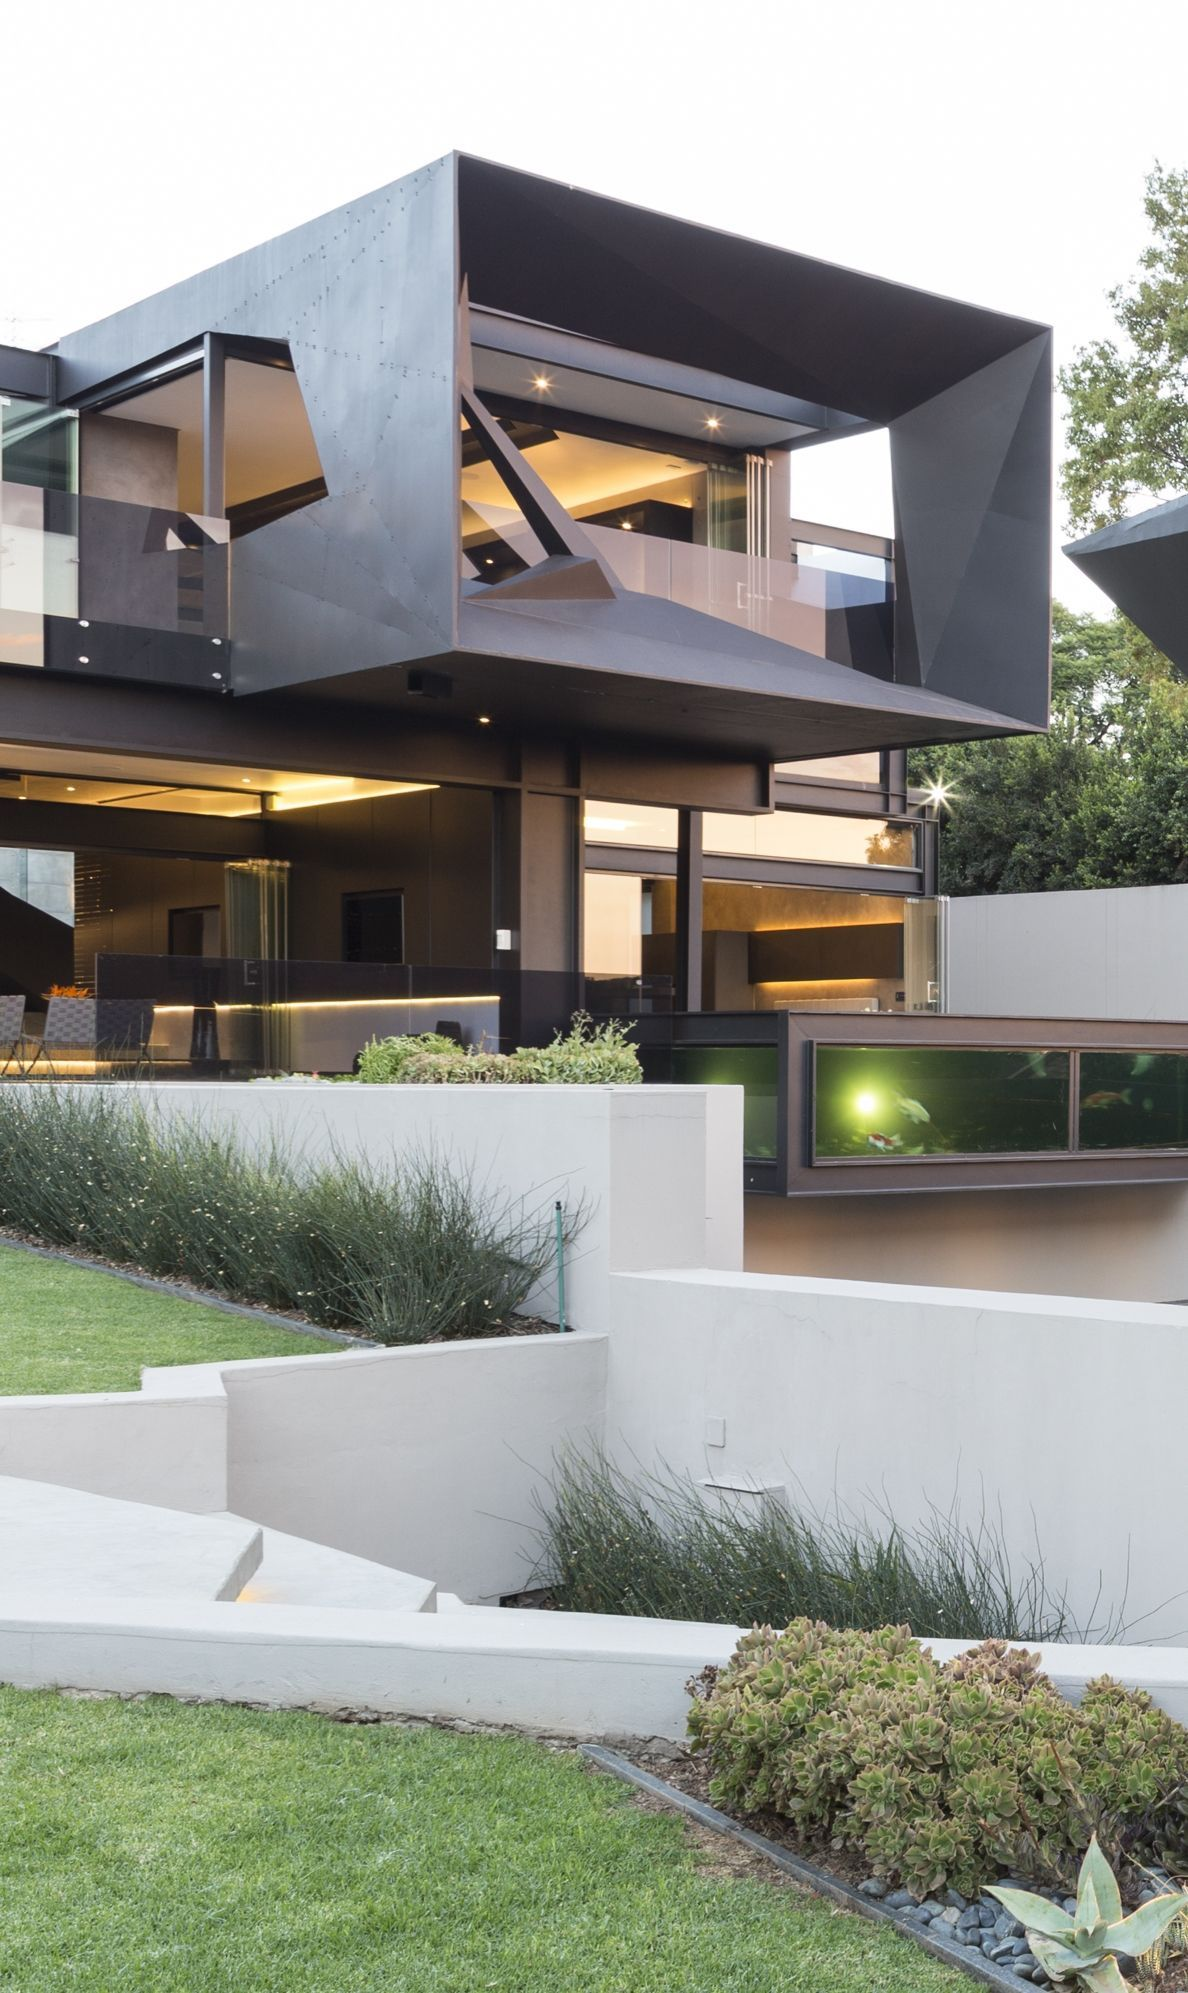 Best Houses In The World Amazing Kloof Road House Archibeast Architecture Houses Modern Architecture House House Architecture Design Modern Architecture